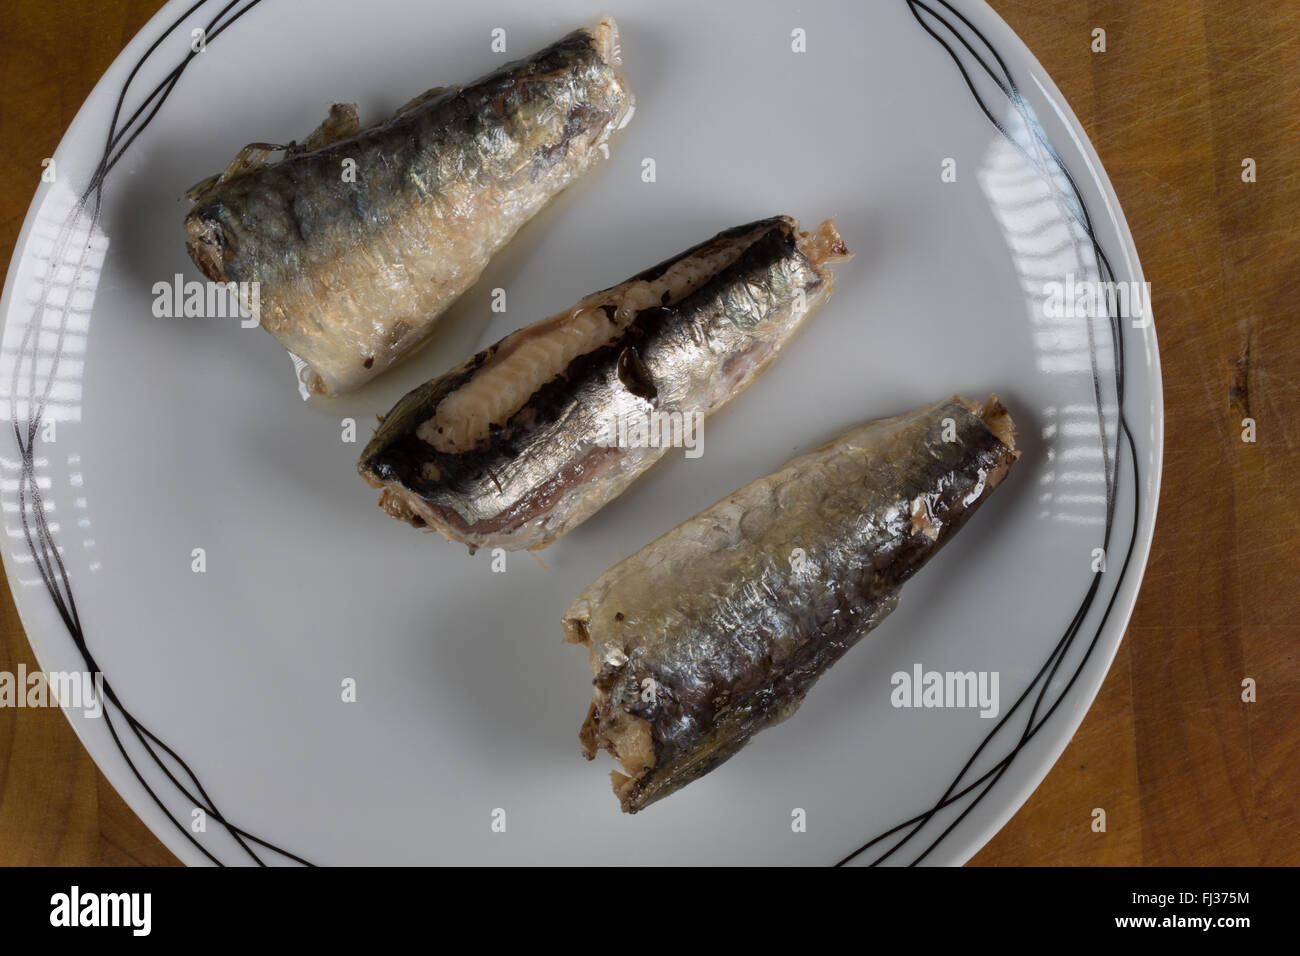 A macro image of canned, ready to eat, Moroccan Sardines in Sunflower oil presented on a white plate. Stock Photo